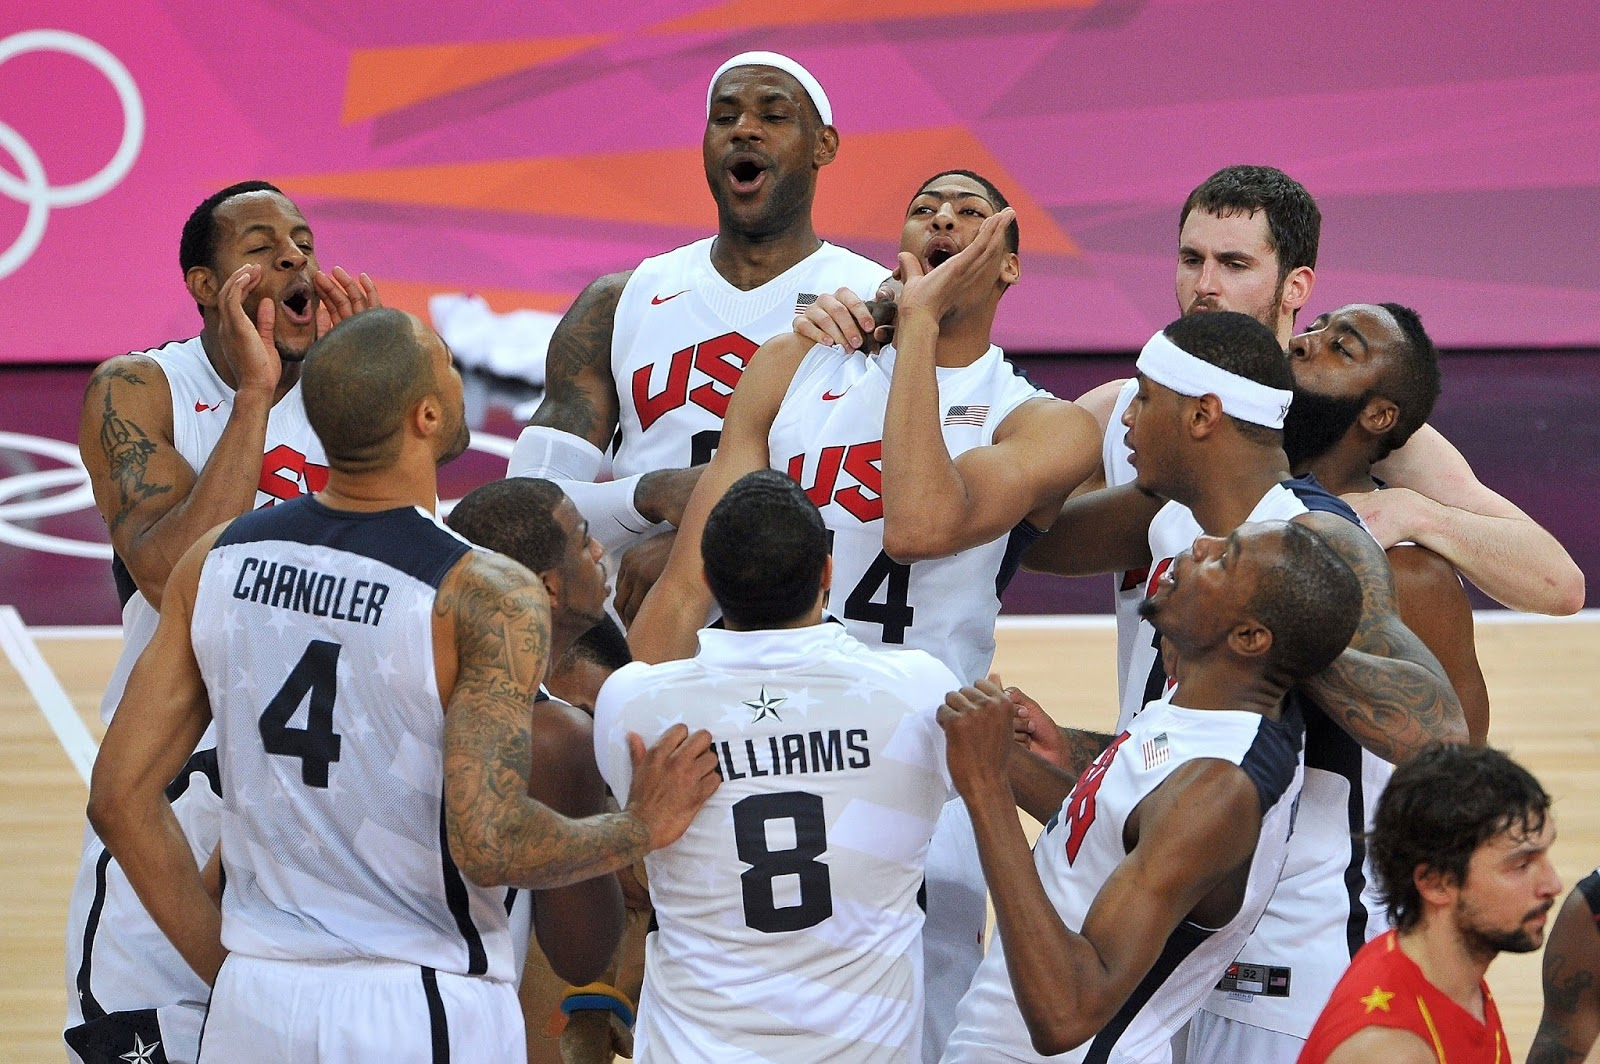 OLYMPICS TEAM USA BASKETBALL 2